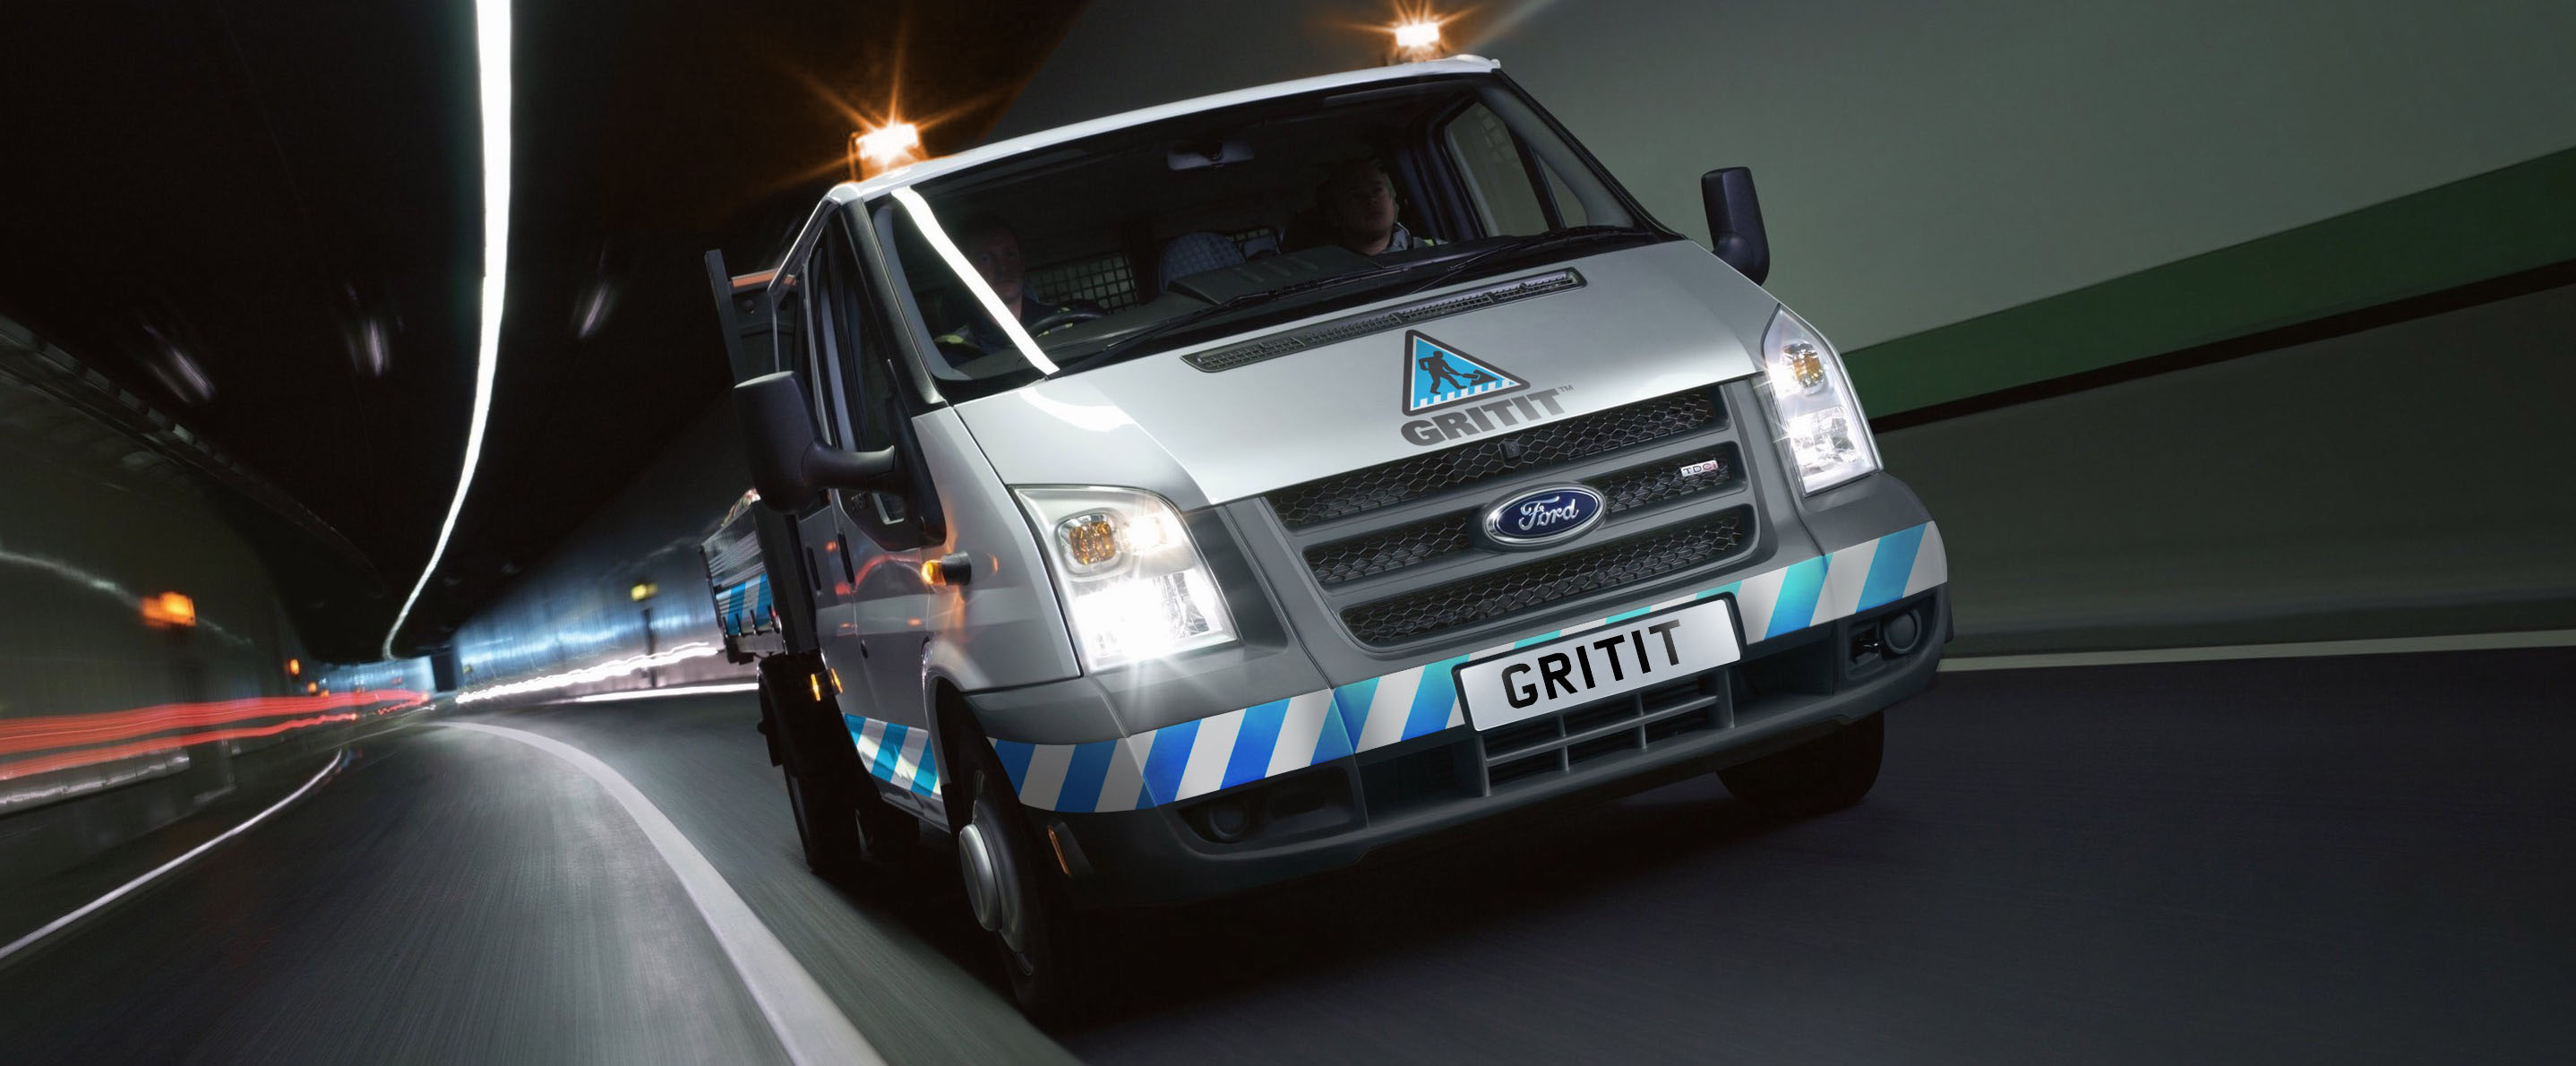 GRITIT Foot Path Services: gritting, de-icing, snow clearance, grounds maintenance and path repair